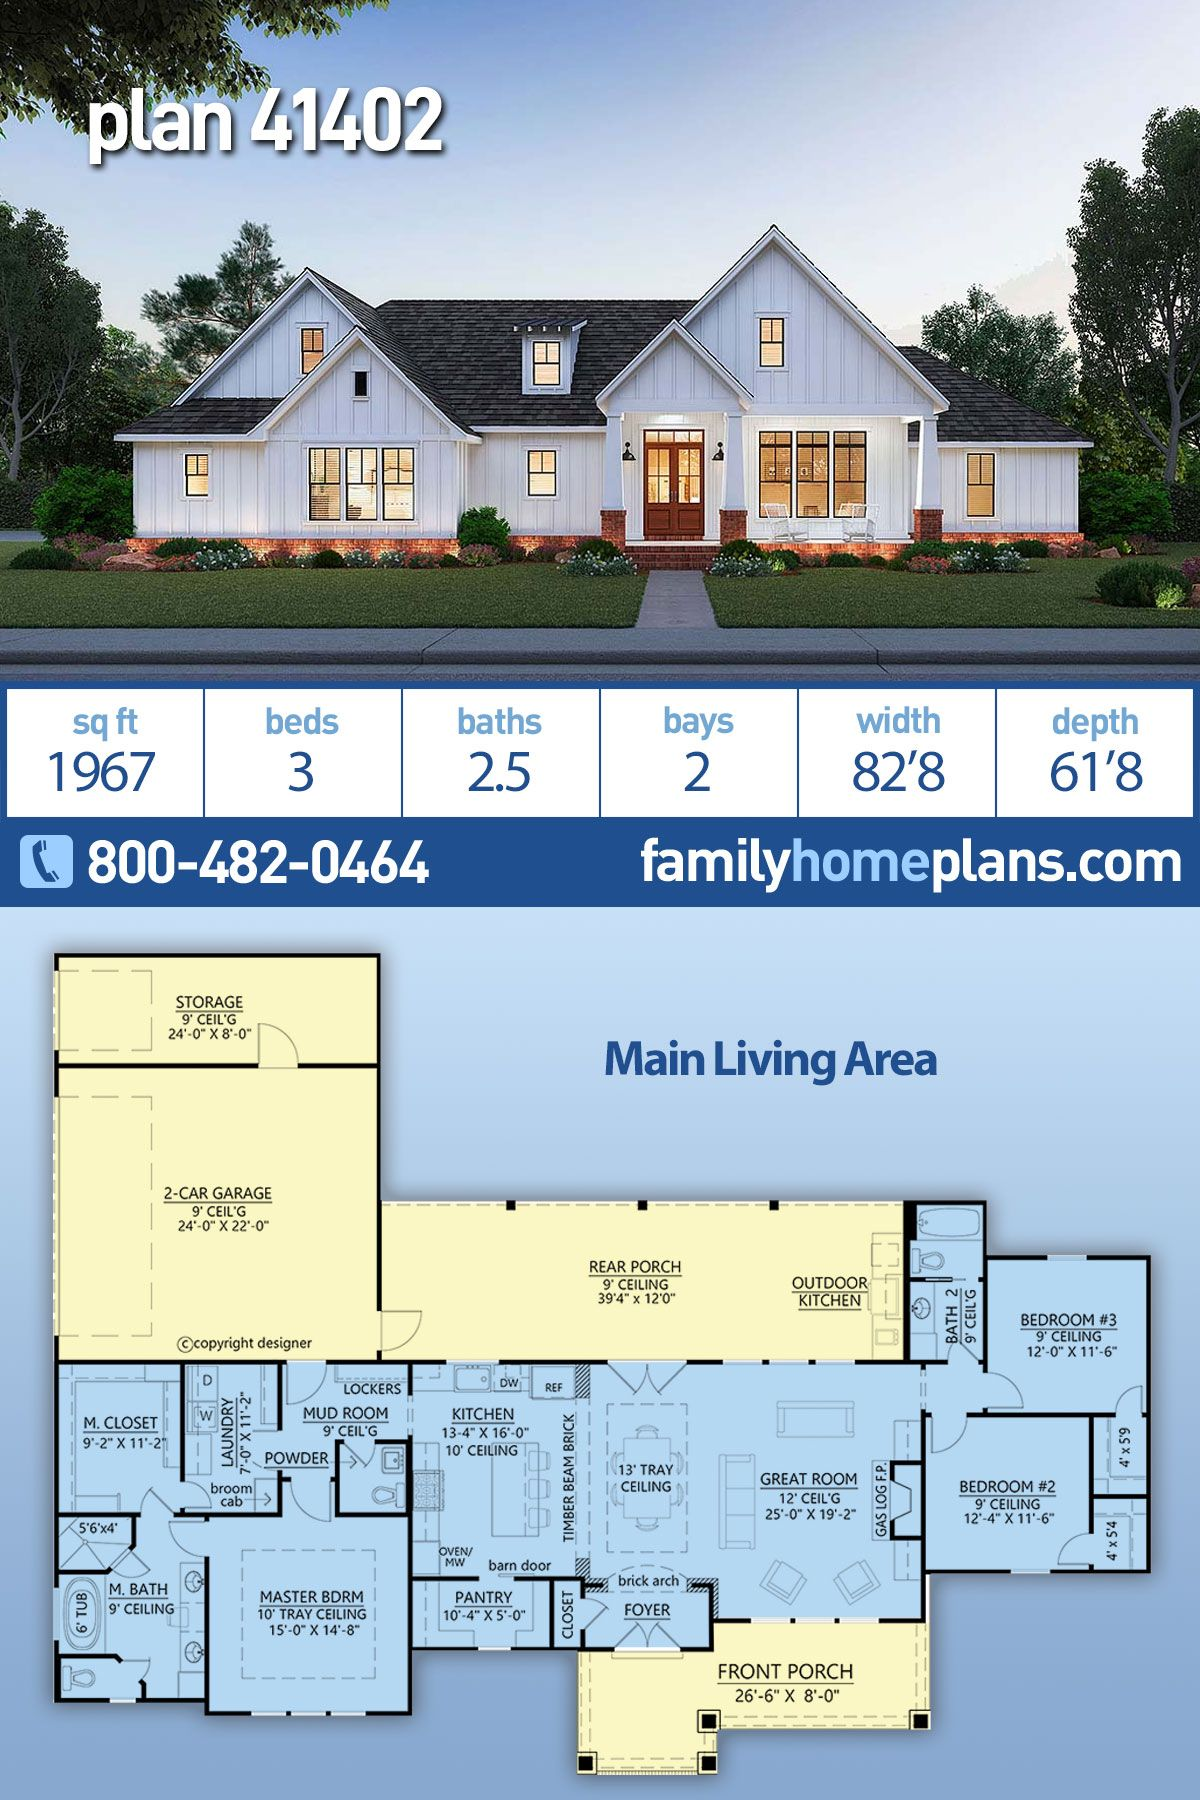 Traditional Style House Plan 41402 With 3 Bed 3 Bath 2 Car Garage New House Plans Dream House Plans Family House Plans